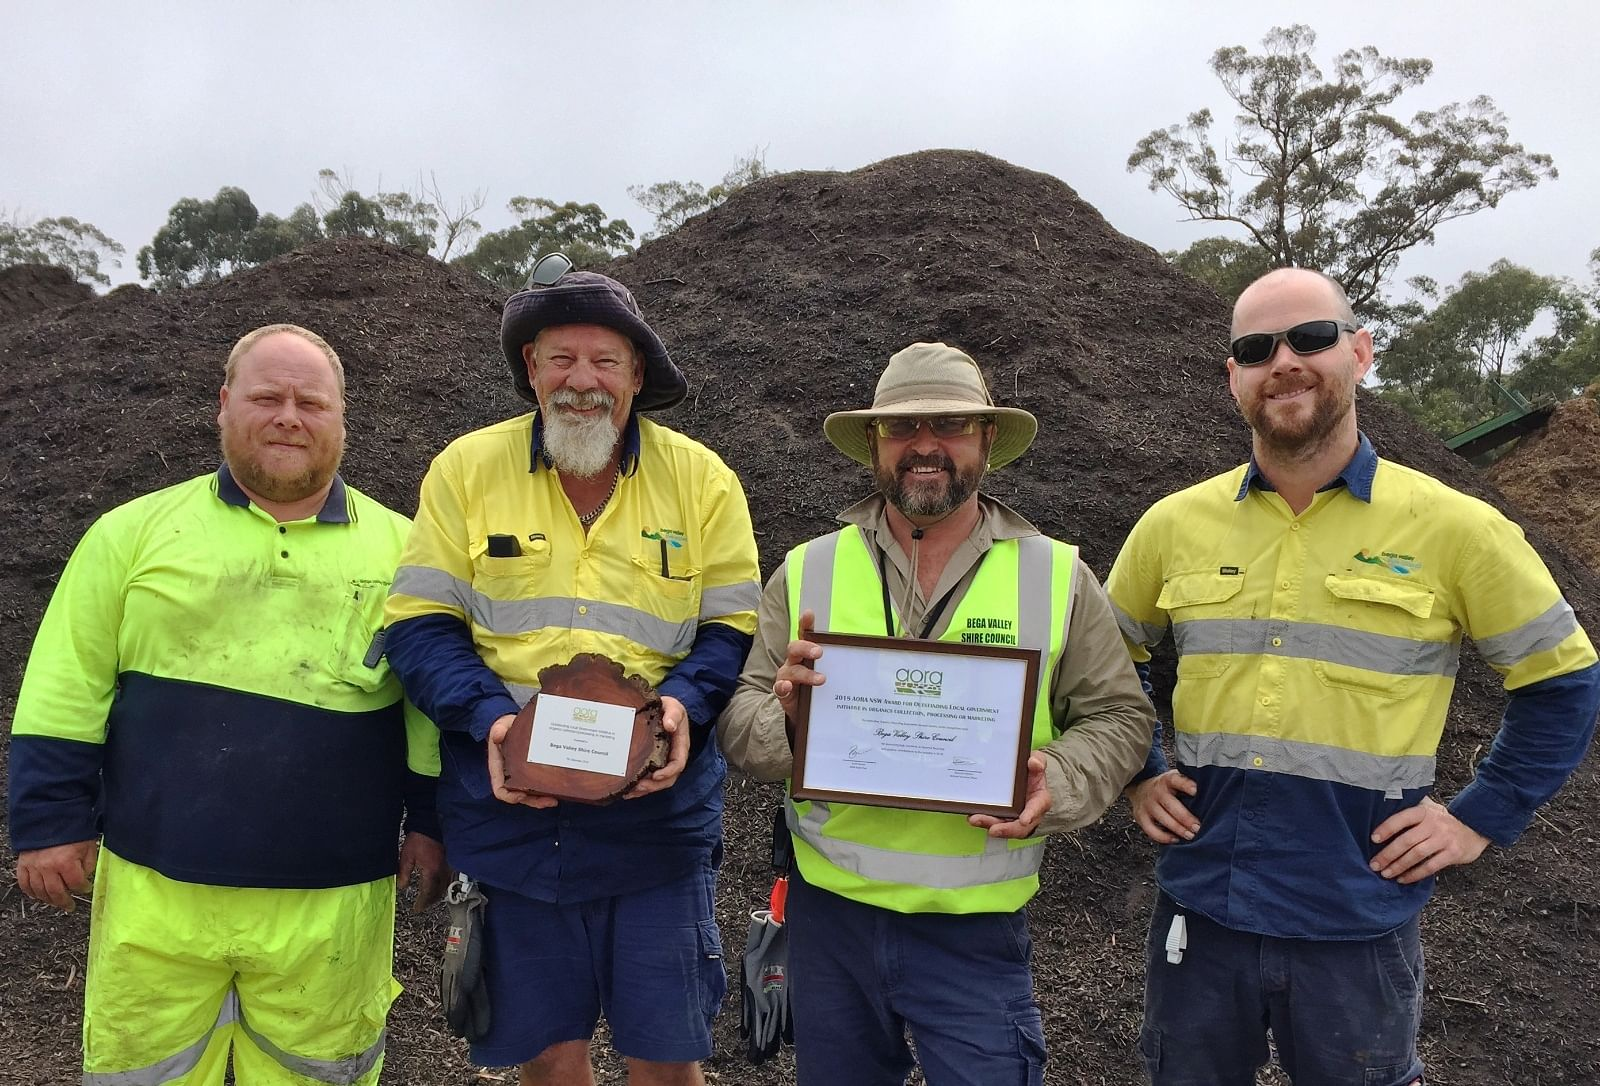 Bega Valley Shire Council compost crew Michael Randall, Glenn Alexander, Mick Yarra and Luke Hamilton are celebrating their recognition at the recent Australian Organics Recycling Association (AORA) Awards.